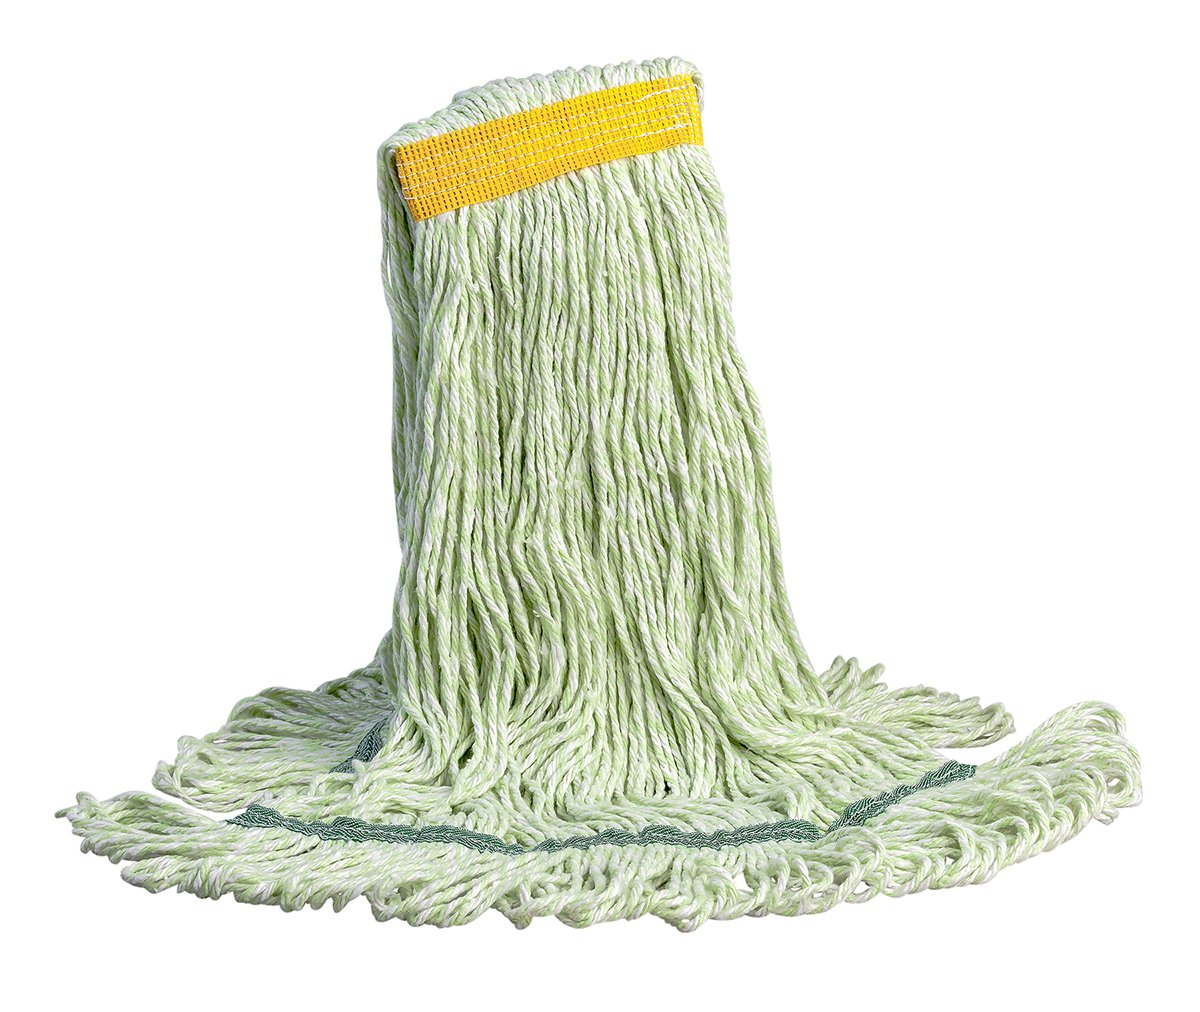 M2 Professional Micro PET Eco-Series Synthetic Large Looped-End Mop Replacement Head, 1.5'' Headband - Case of 12 - For Industrial, Commercial & Home use, Hardwood, tile, etc.